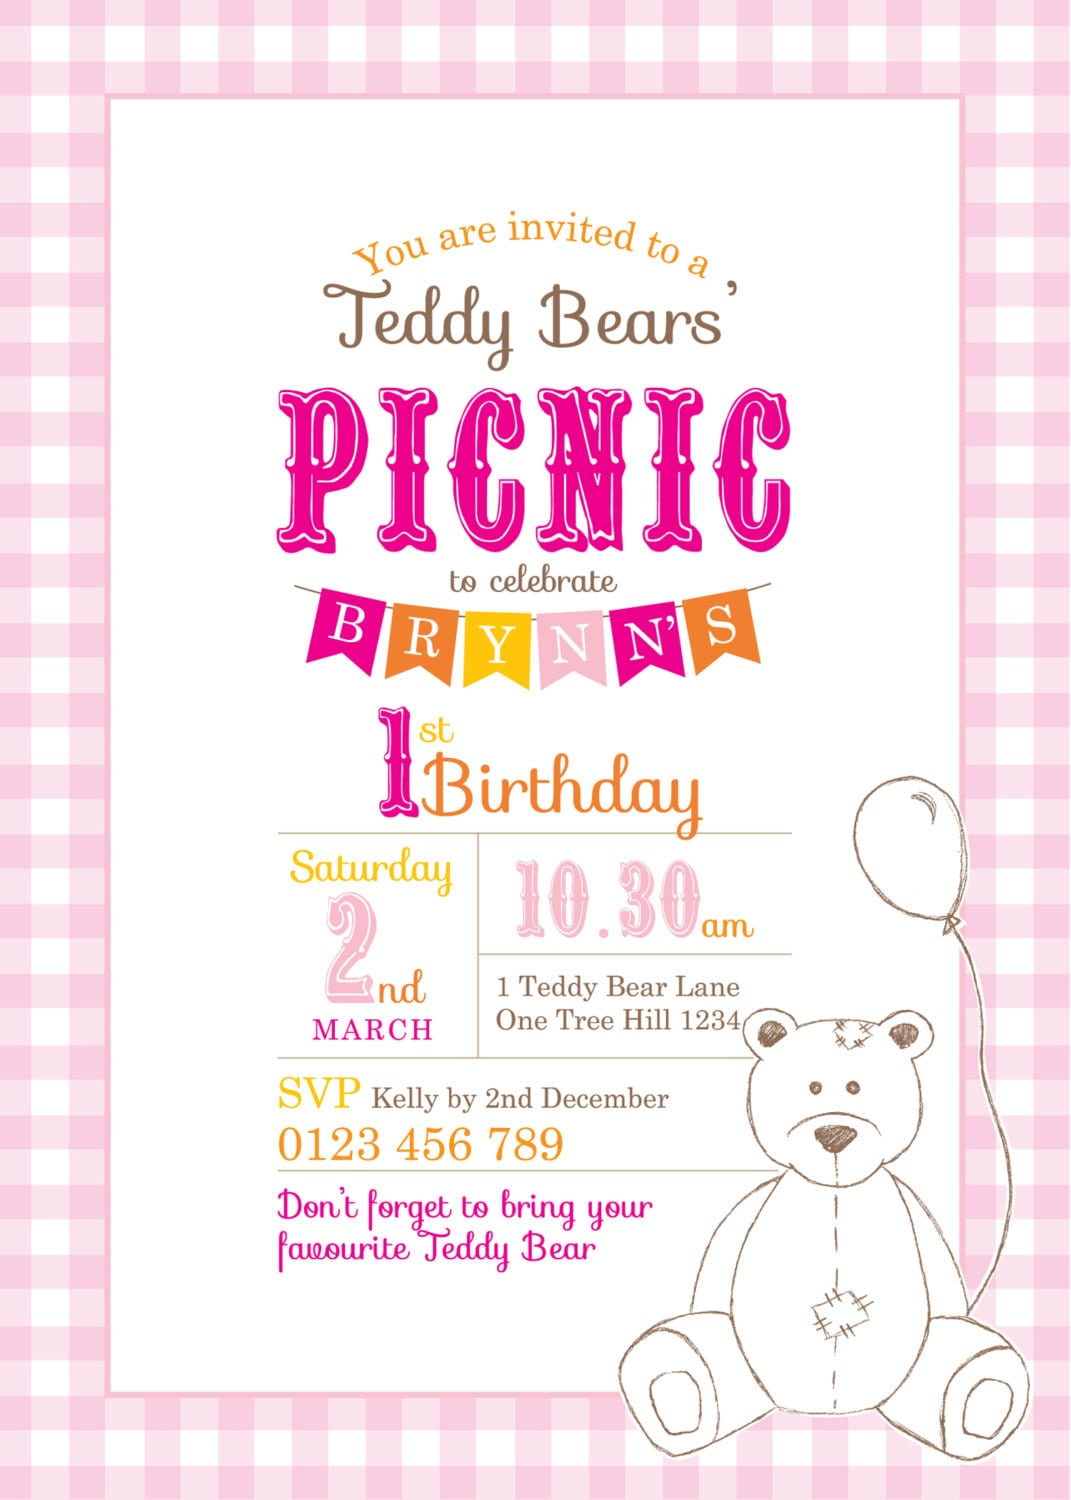 Blog - Page 23 of 386 - Mickey Mouse Invitations Templates